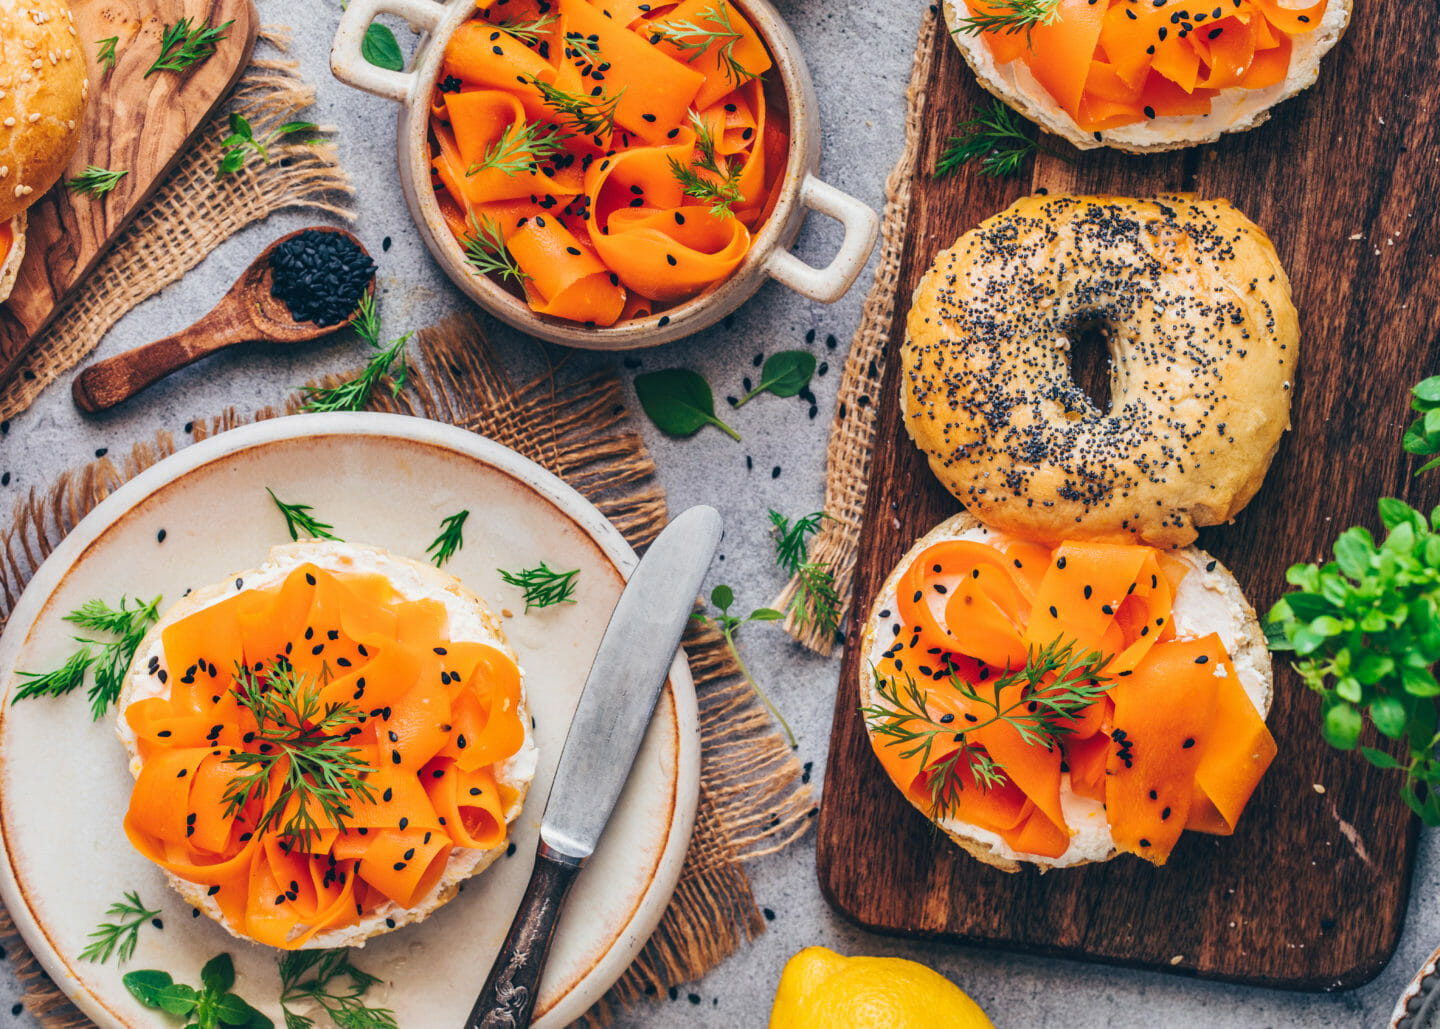 Carrot Lox Recipe (Vegan Fish, Salmon) and Bagels